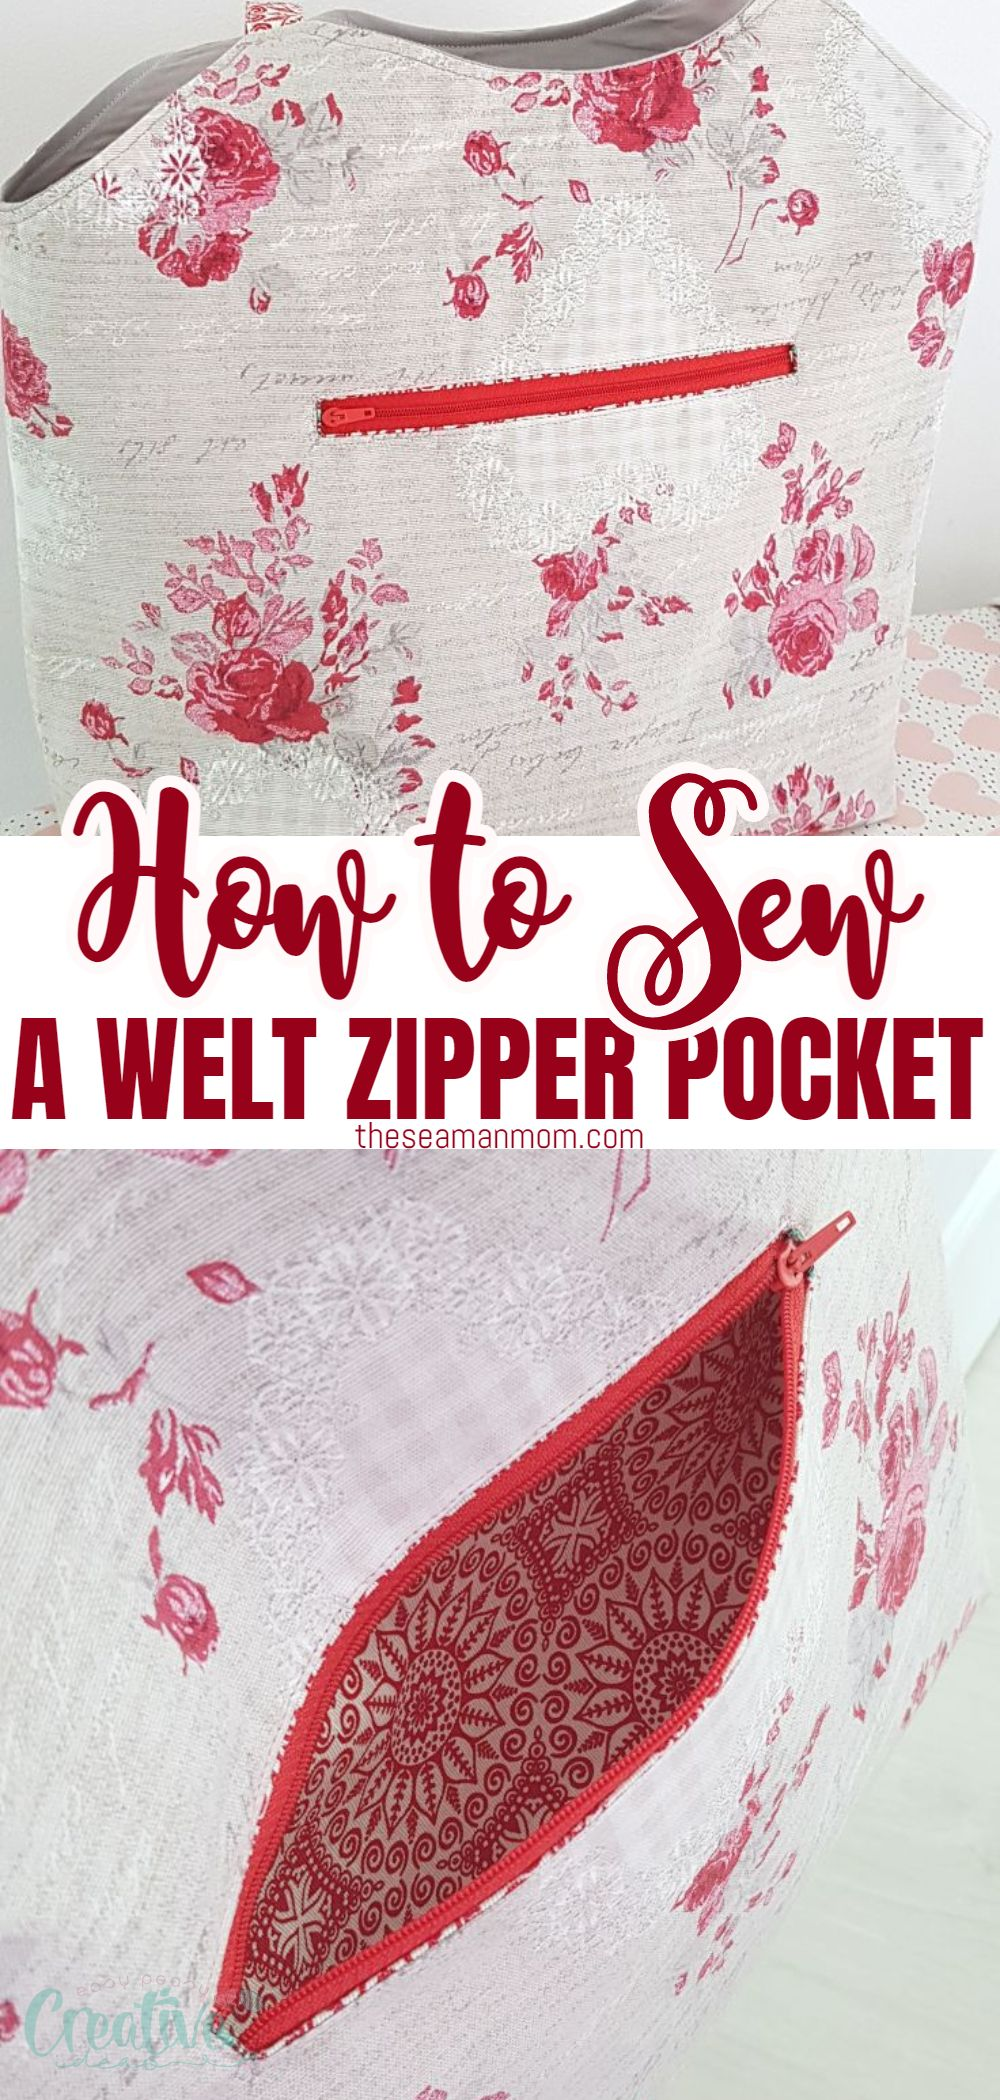 Love sewing bags with lots of pockets? Now you can customize and personalize them even further with a practical and elegant welt zipper pocket! Here you'll find everything you need to know to make a beautiful welt pocket for your handbag or other accessory! via @petroneagu